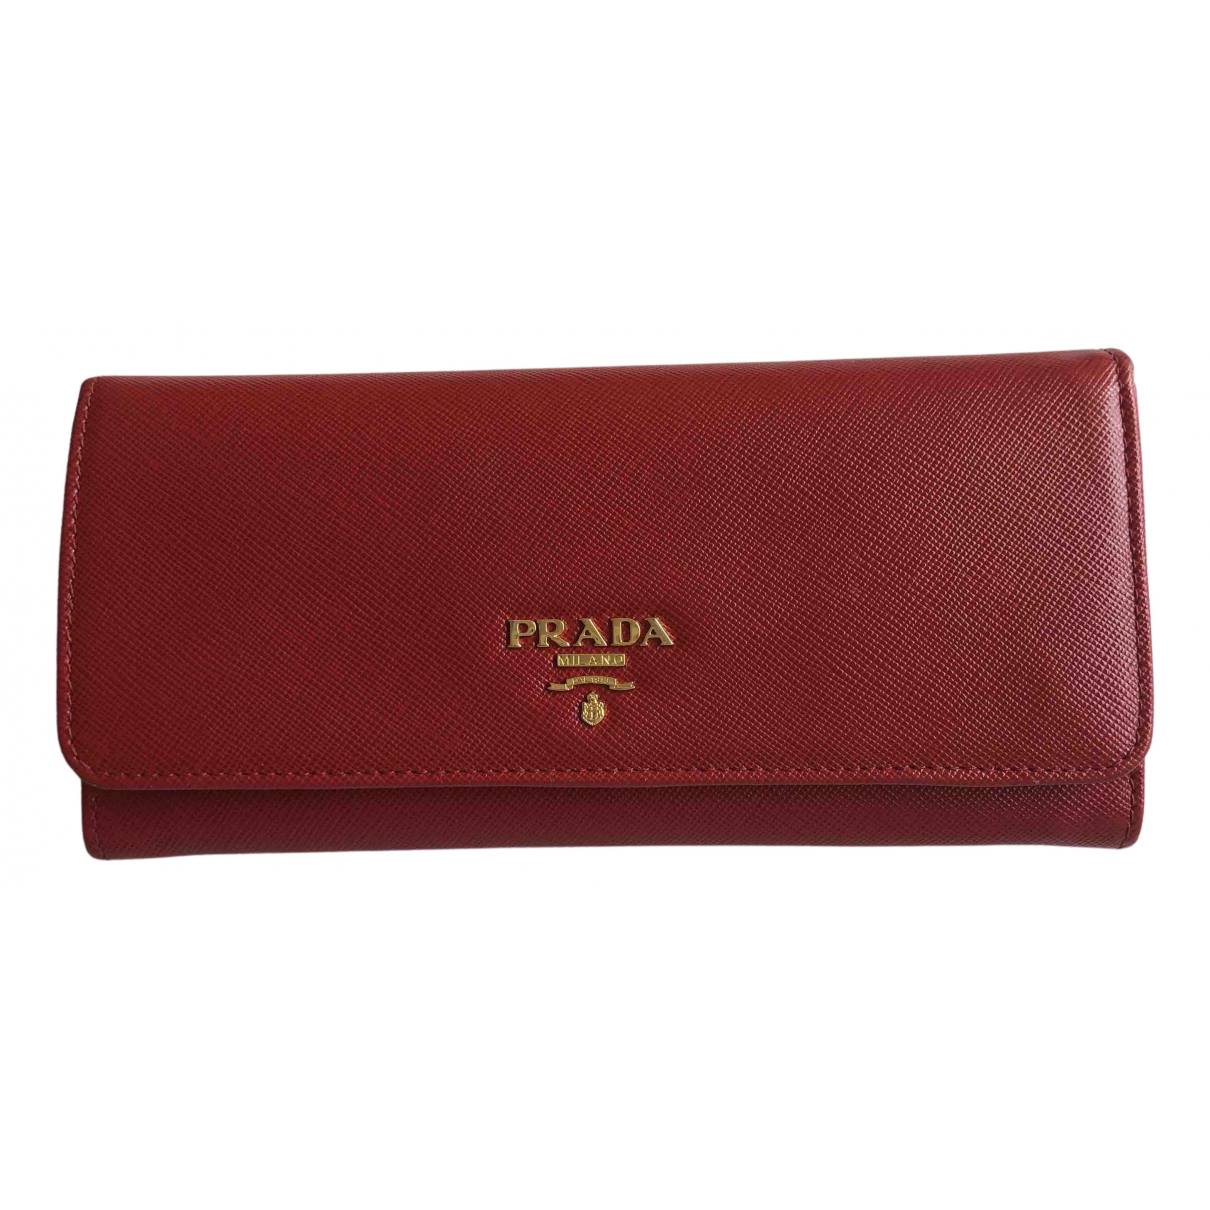 Prada N Red Patent leather wallet for Women N